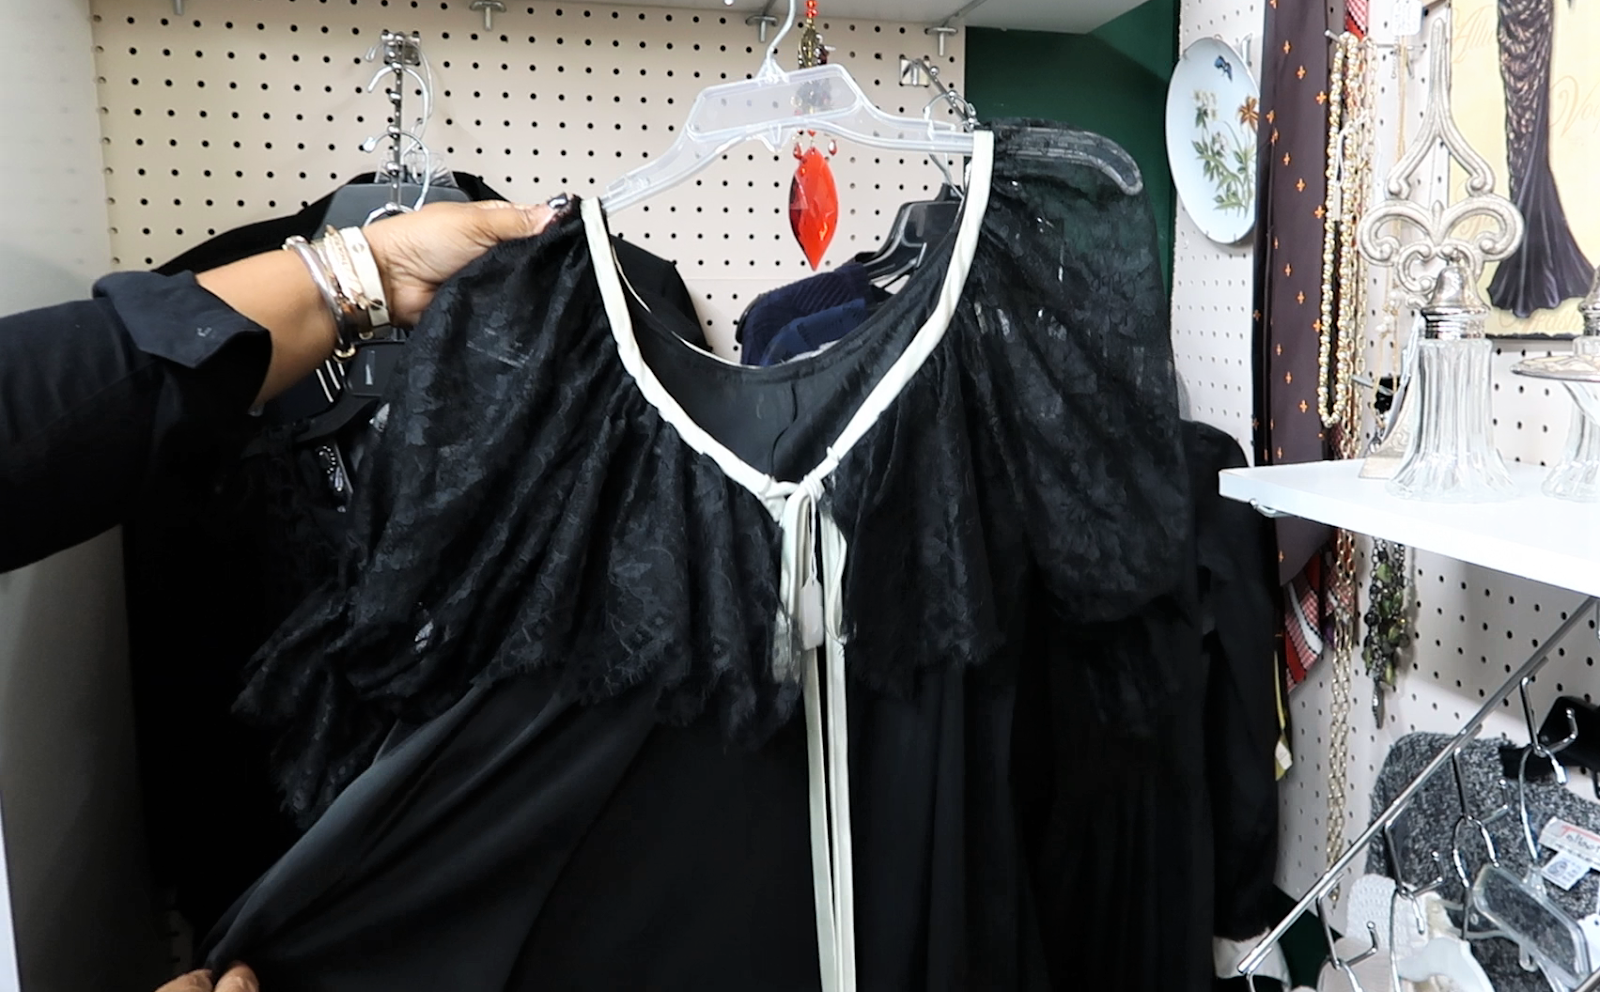 Vintage dresses at thrift store. Thrift Bits and Favorites